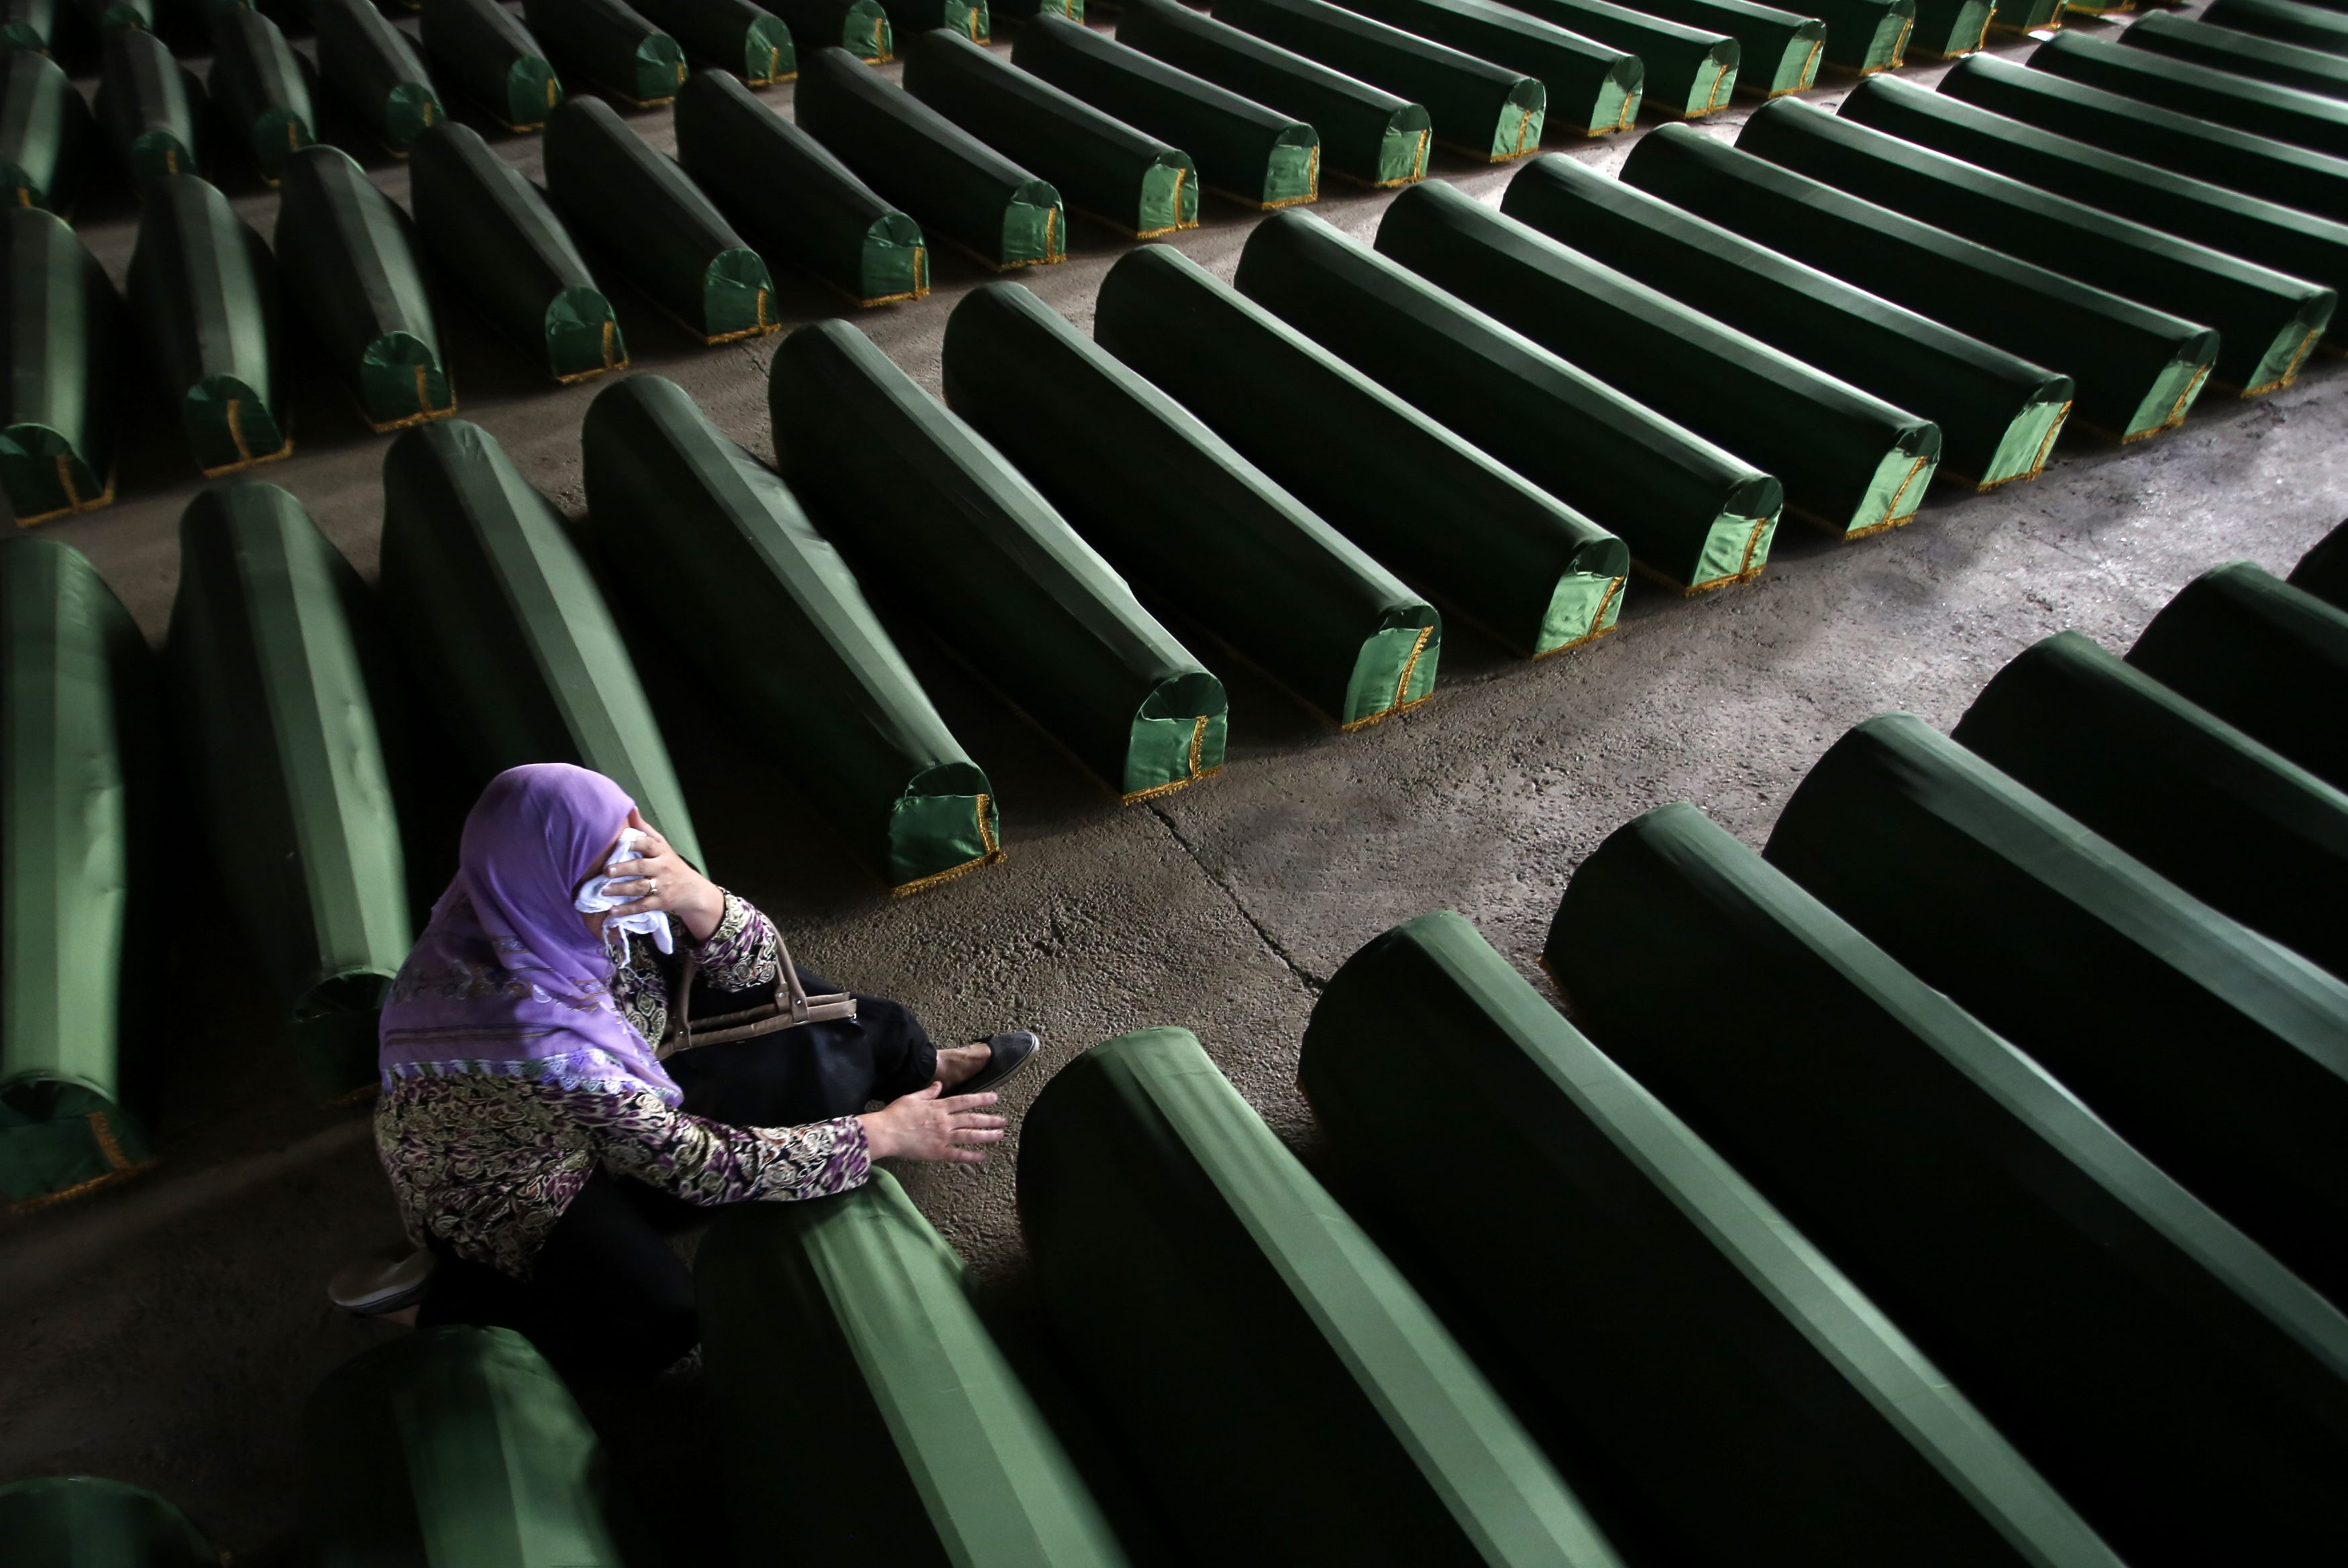 A Bosnian Muslim woman cries near coffin of a relative, which is one of the 175 coffins of newly identified victims from the 1995 Srebrenica massacre, in Potocari Memorial Center, near Srebrenica, July 10, 2014. Family members, foreign dignitaries and gue